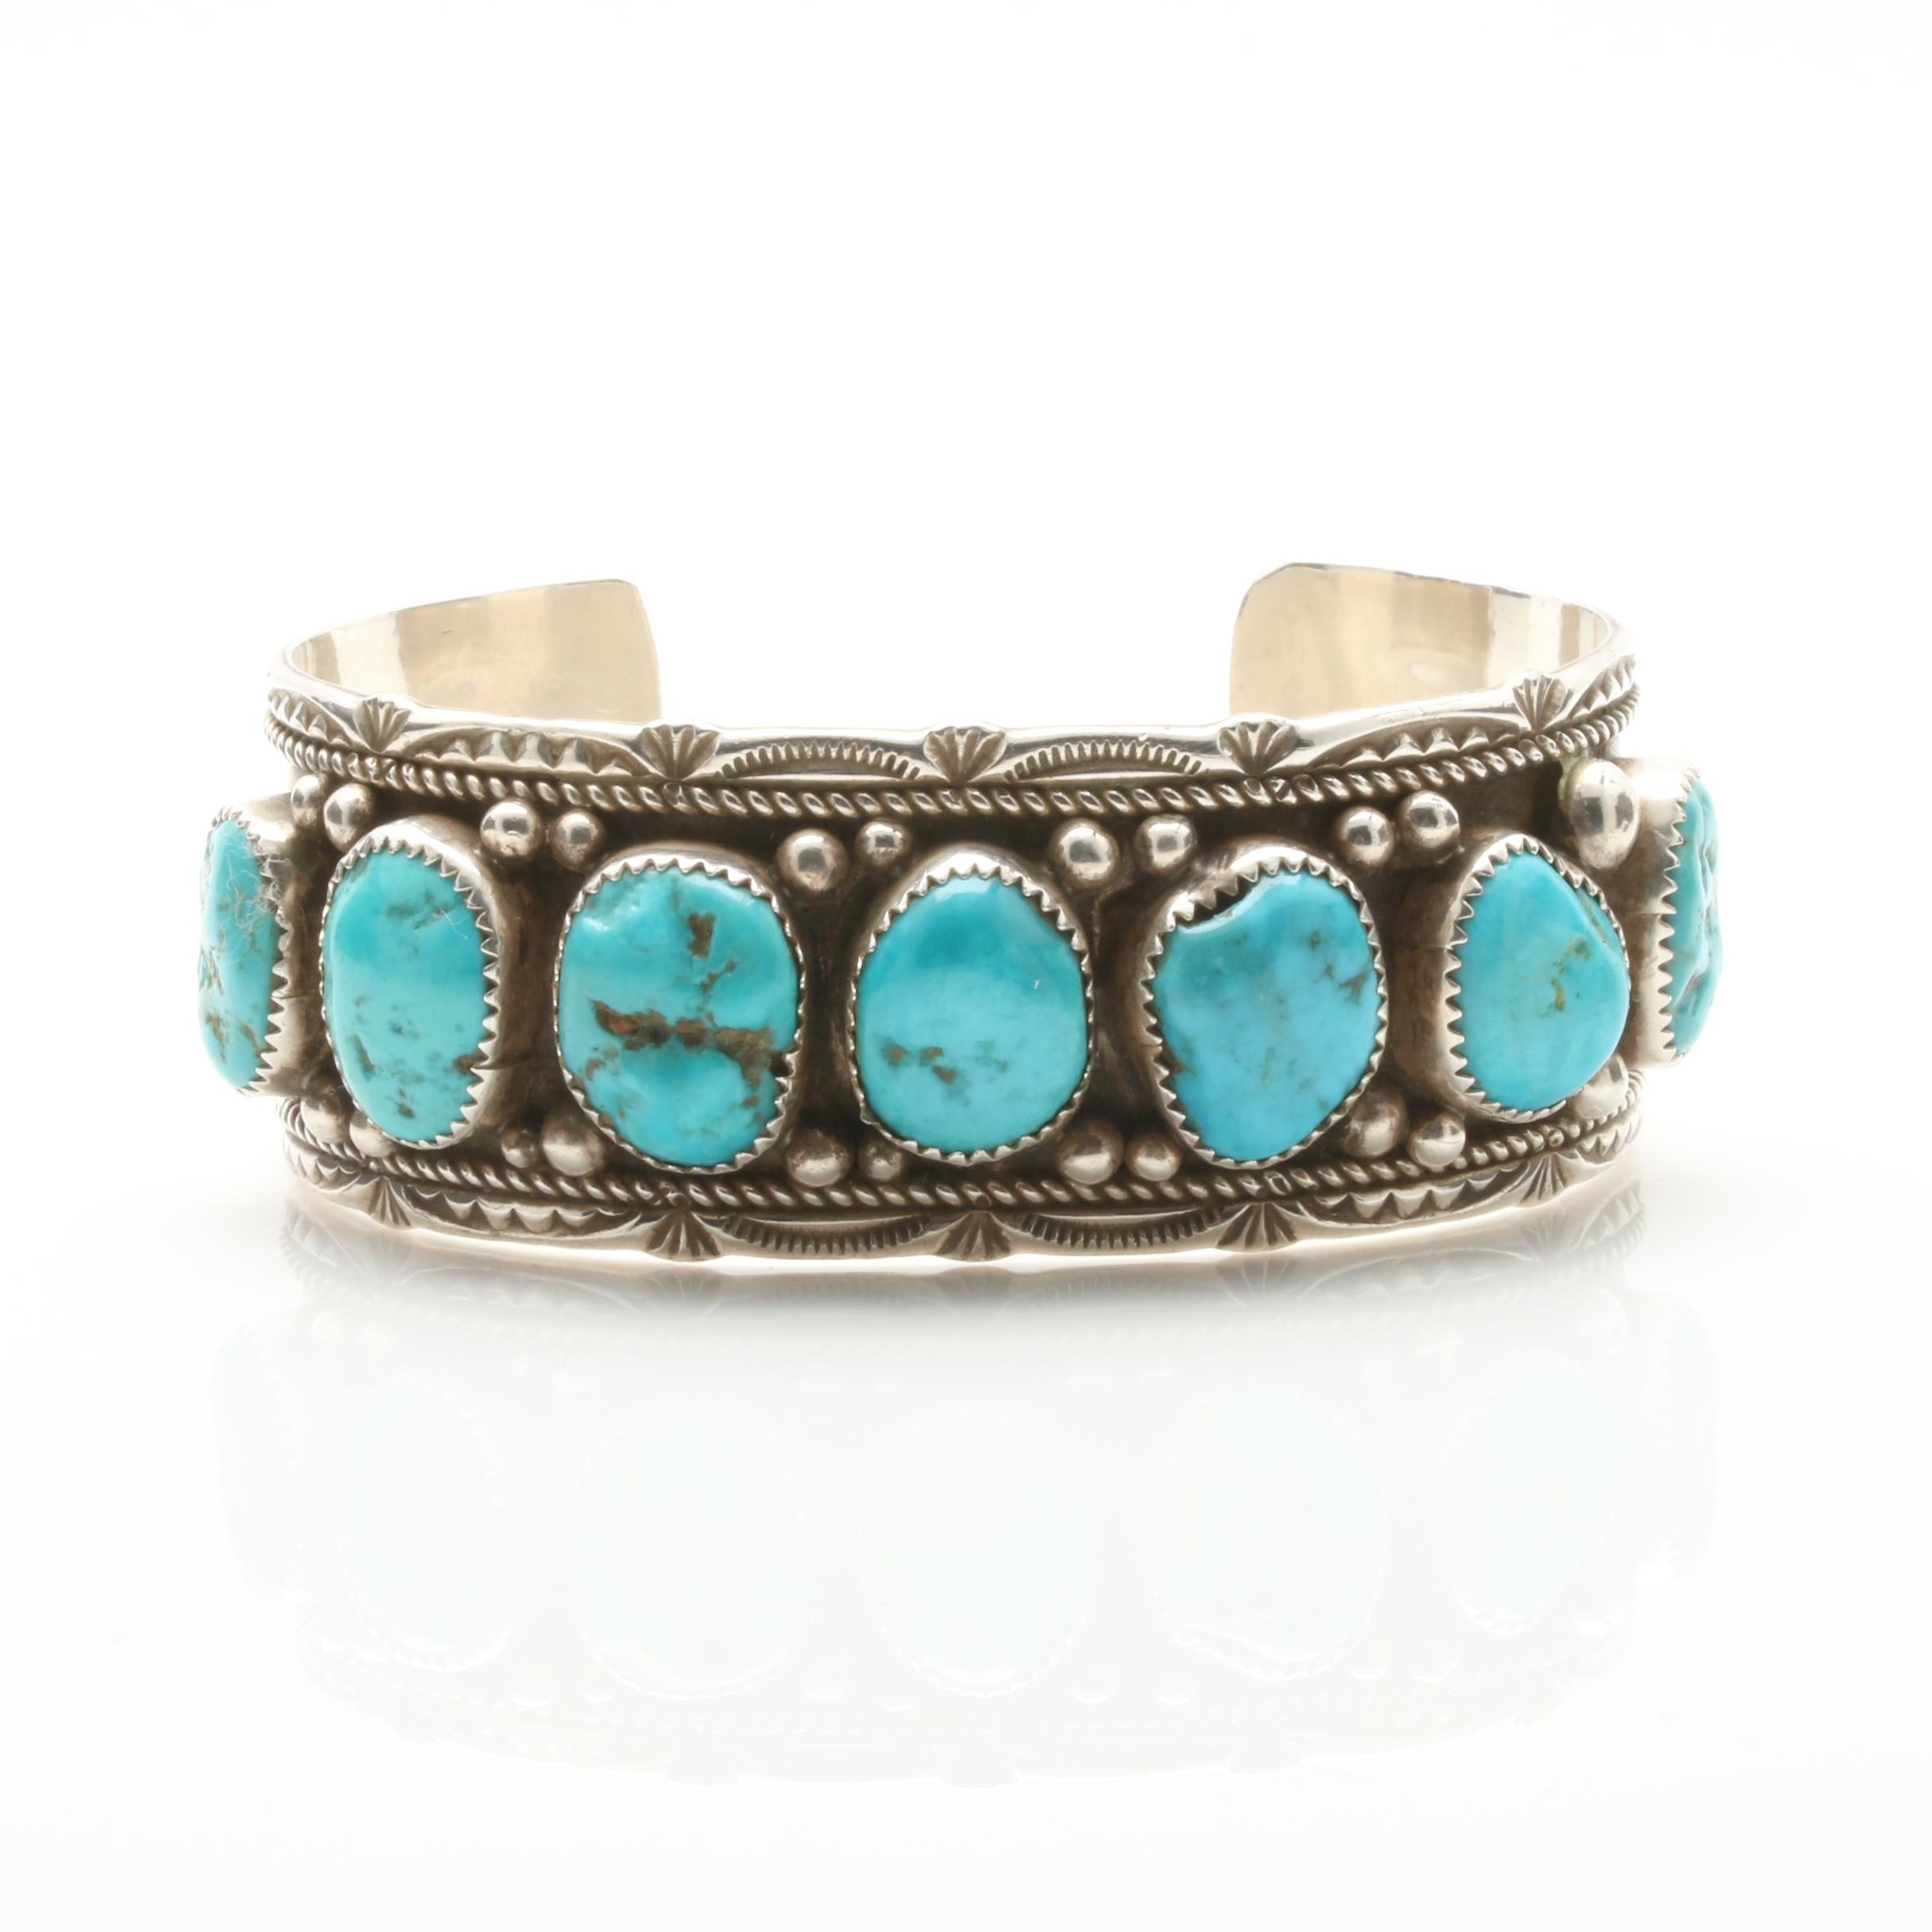 Melvin Thompson Navajo Diné Sterling Silver Turquoise Cuff Bracelet